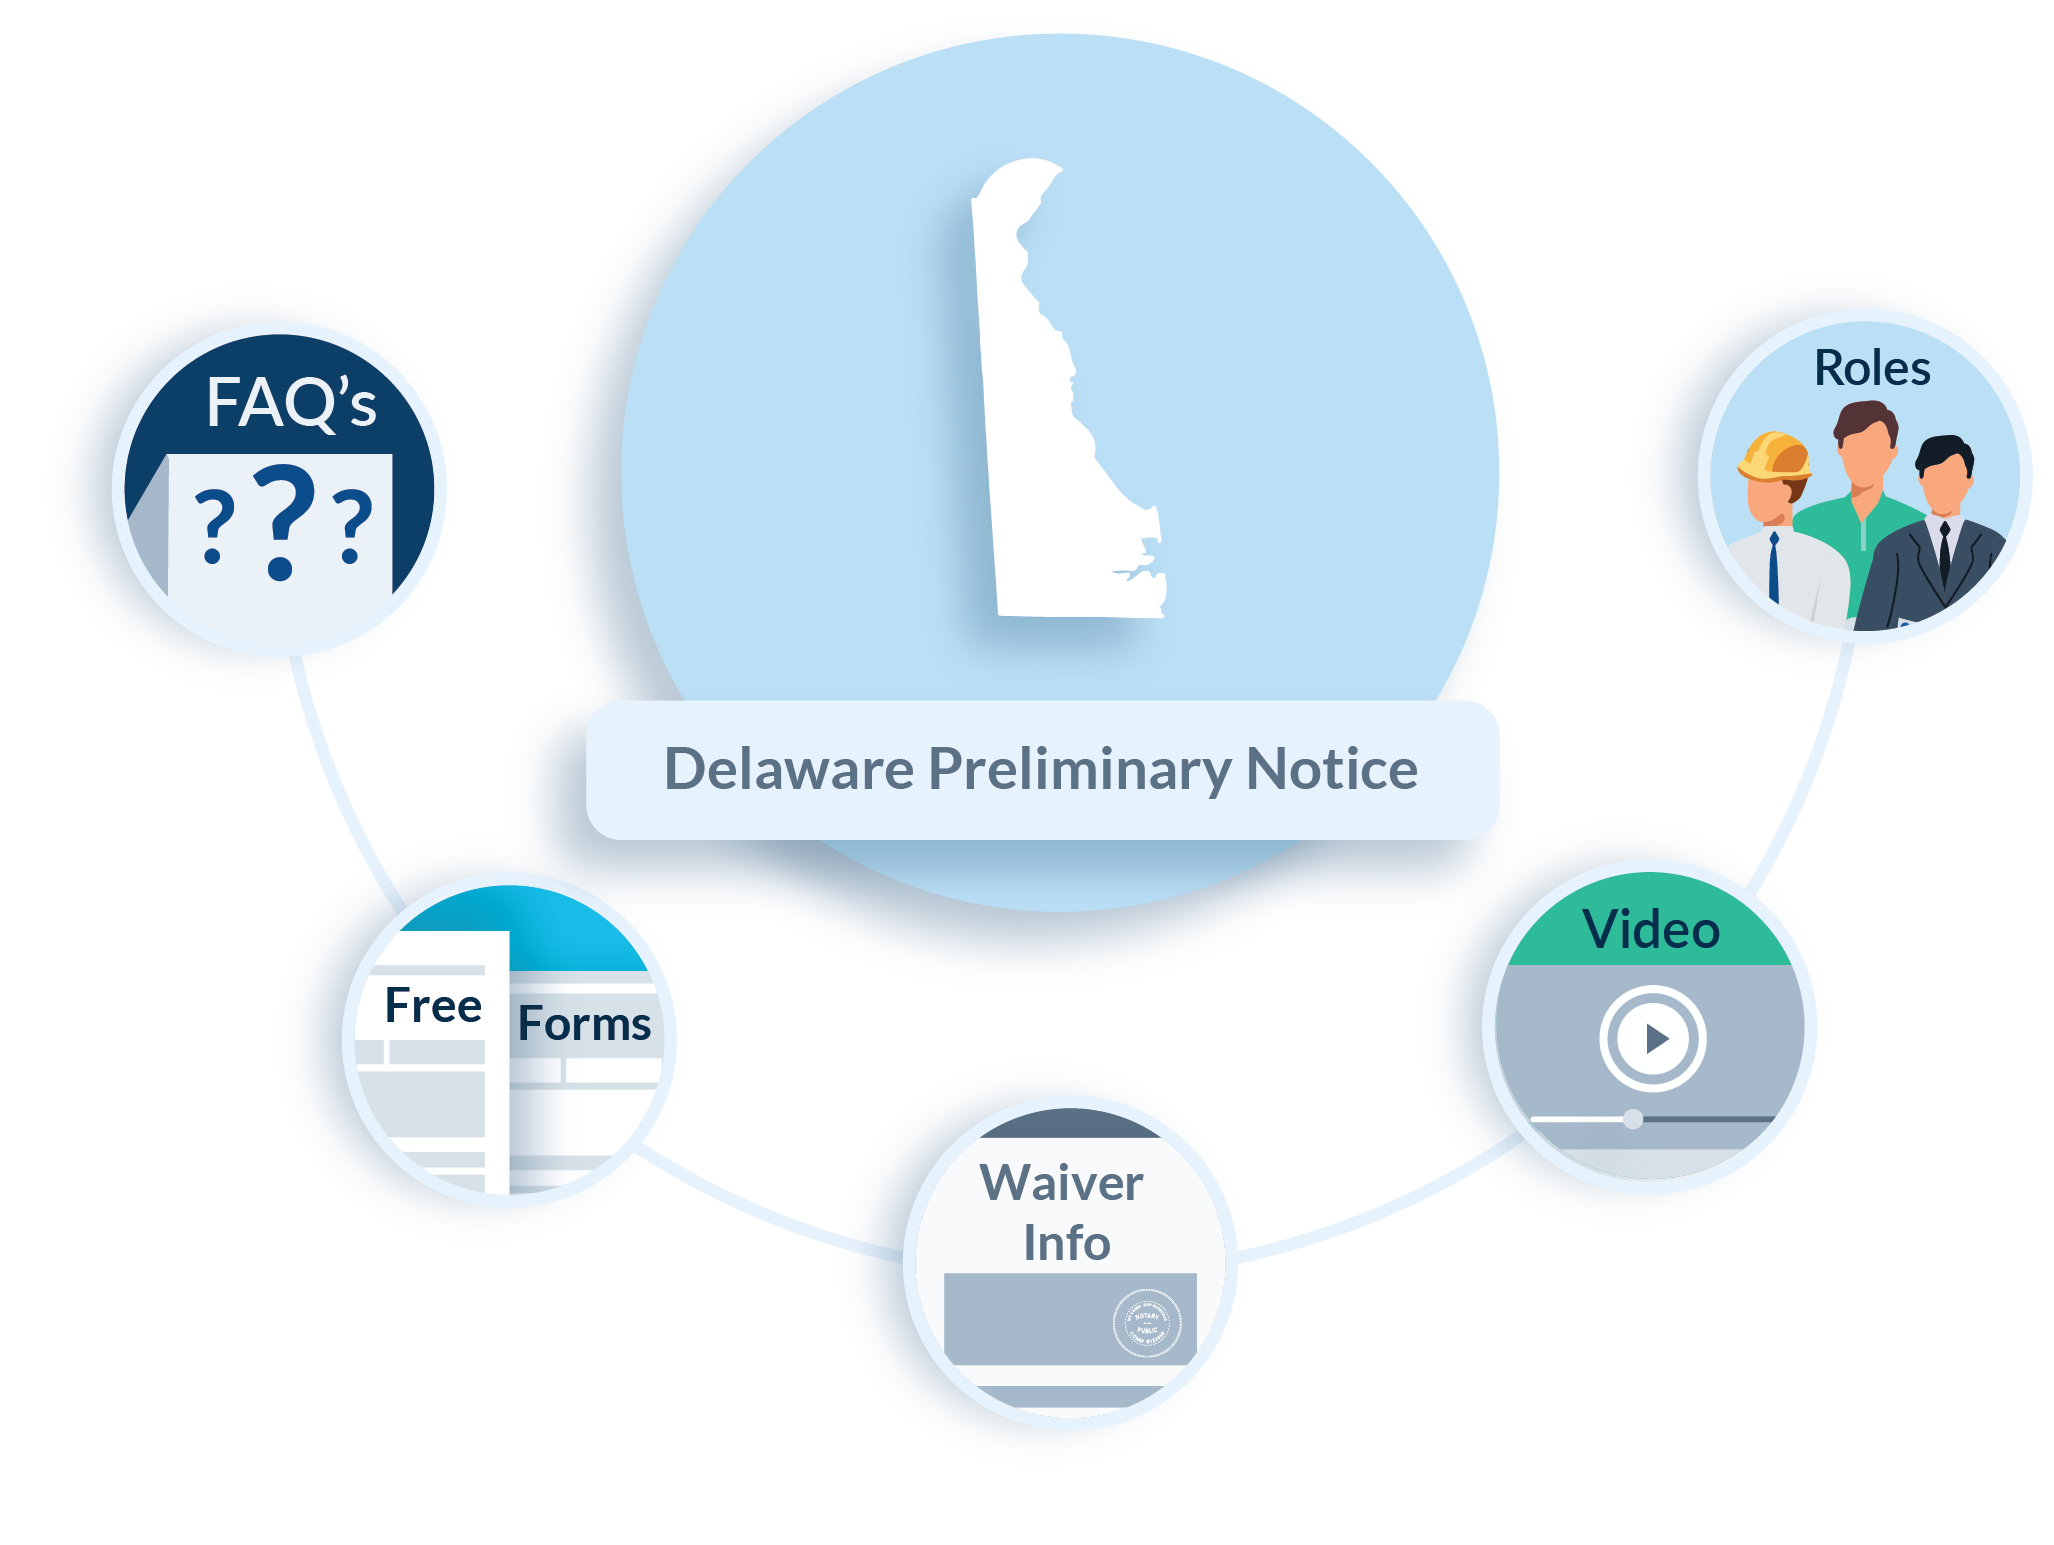 Delaware Preliminary Notice FAQs